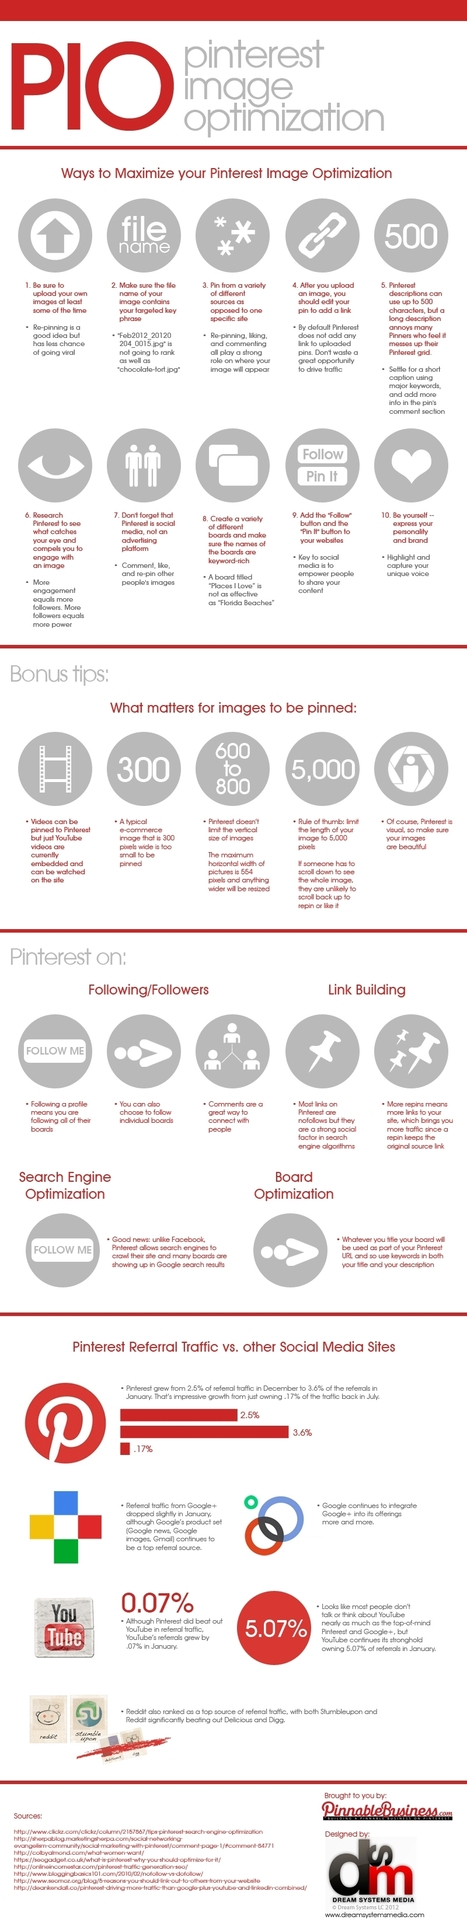 Pinterest Image Optimization [Infographic] | Business for small businesses | Scoop.it